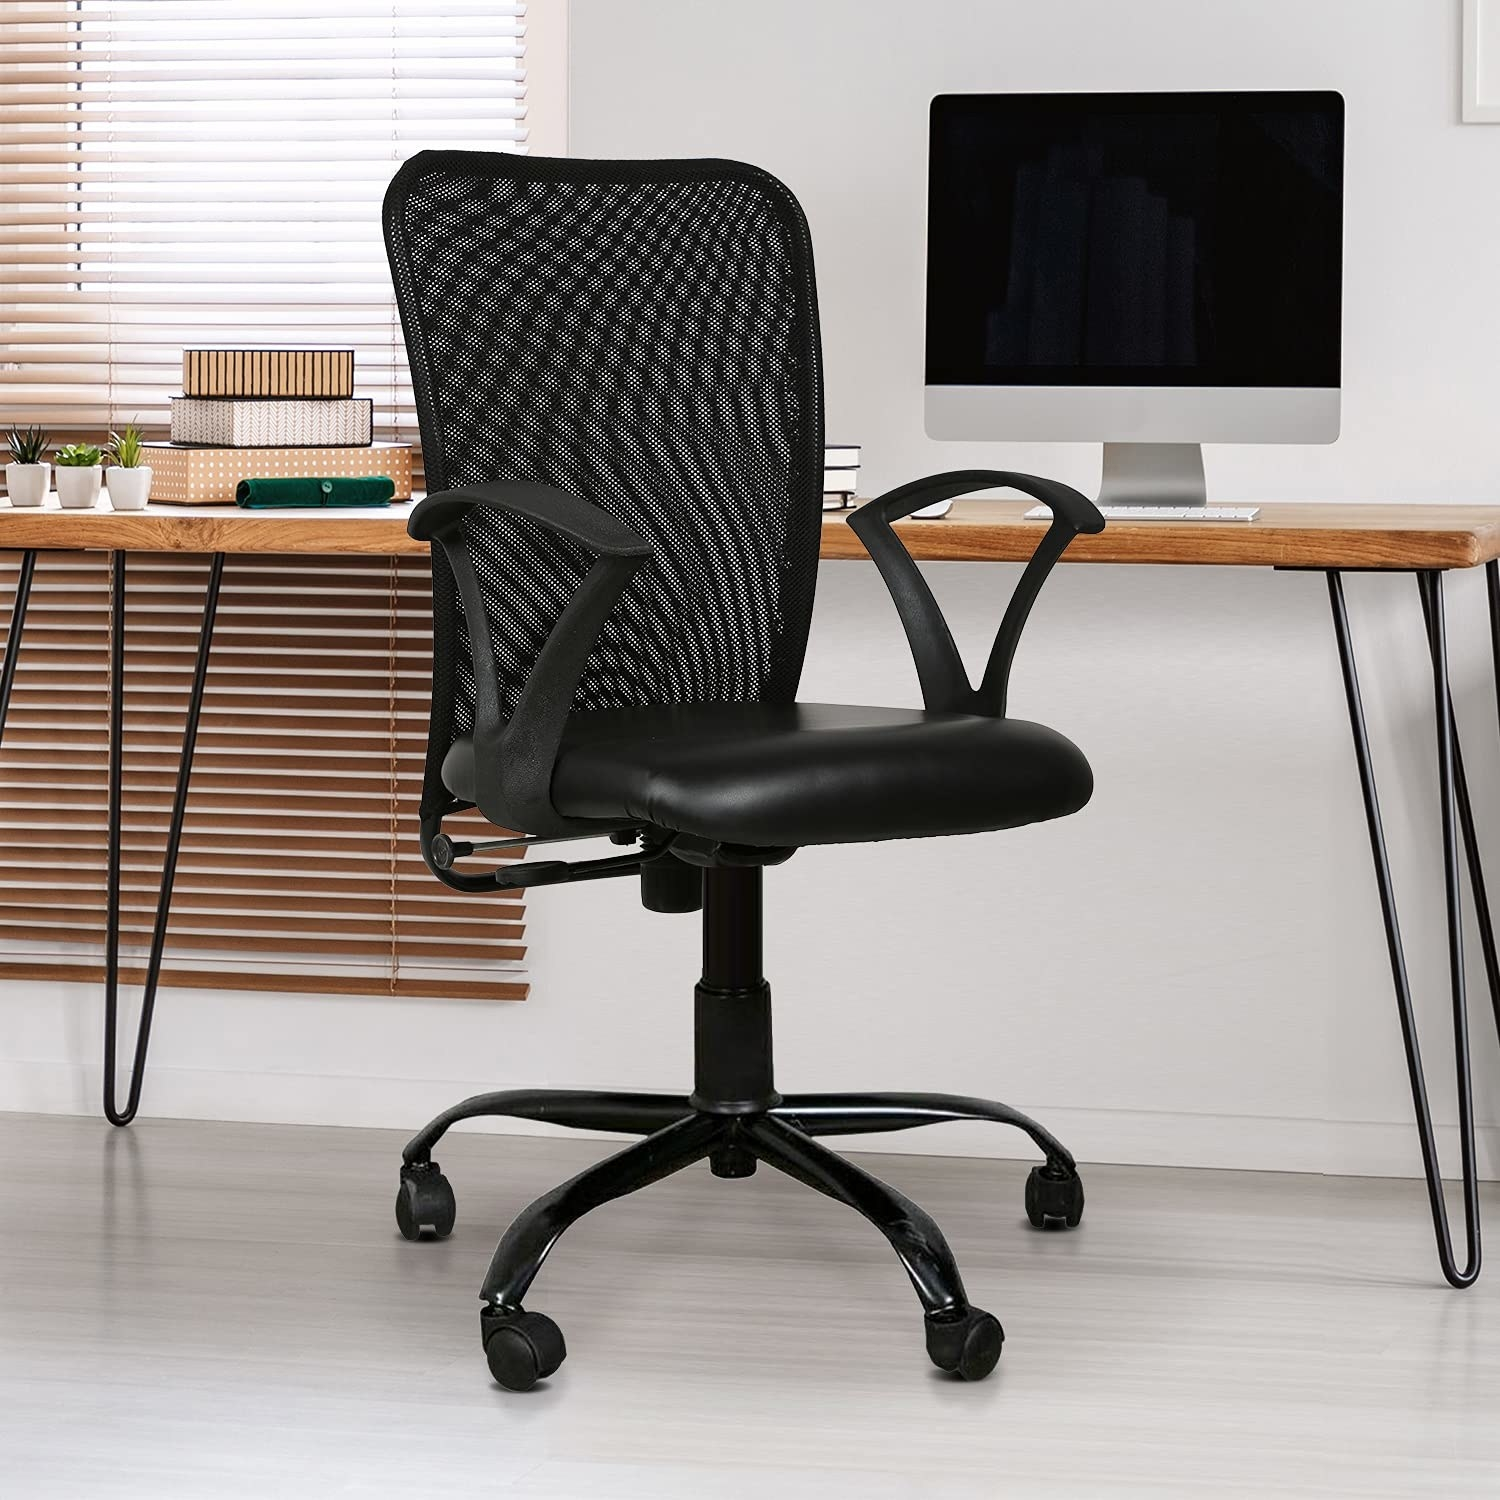 A black chair with wheels.